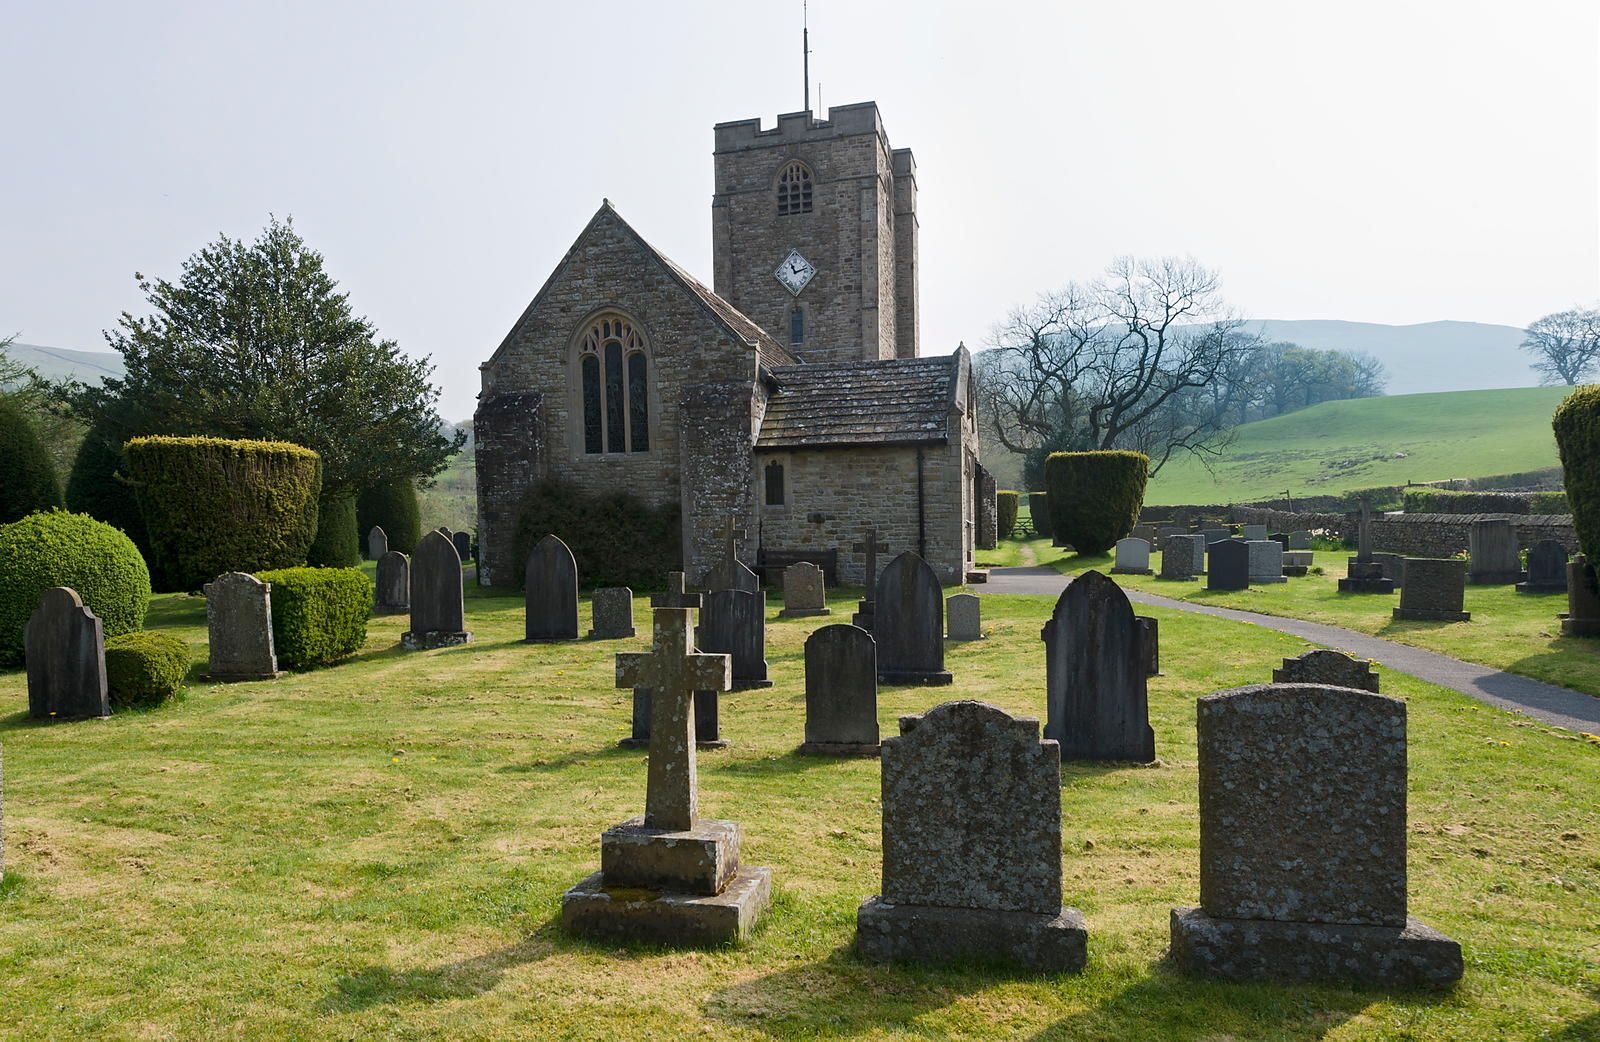 Barbon church